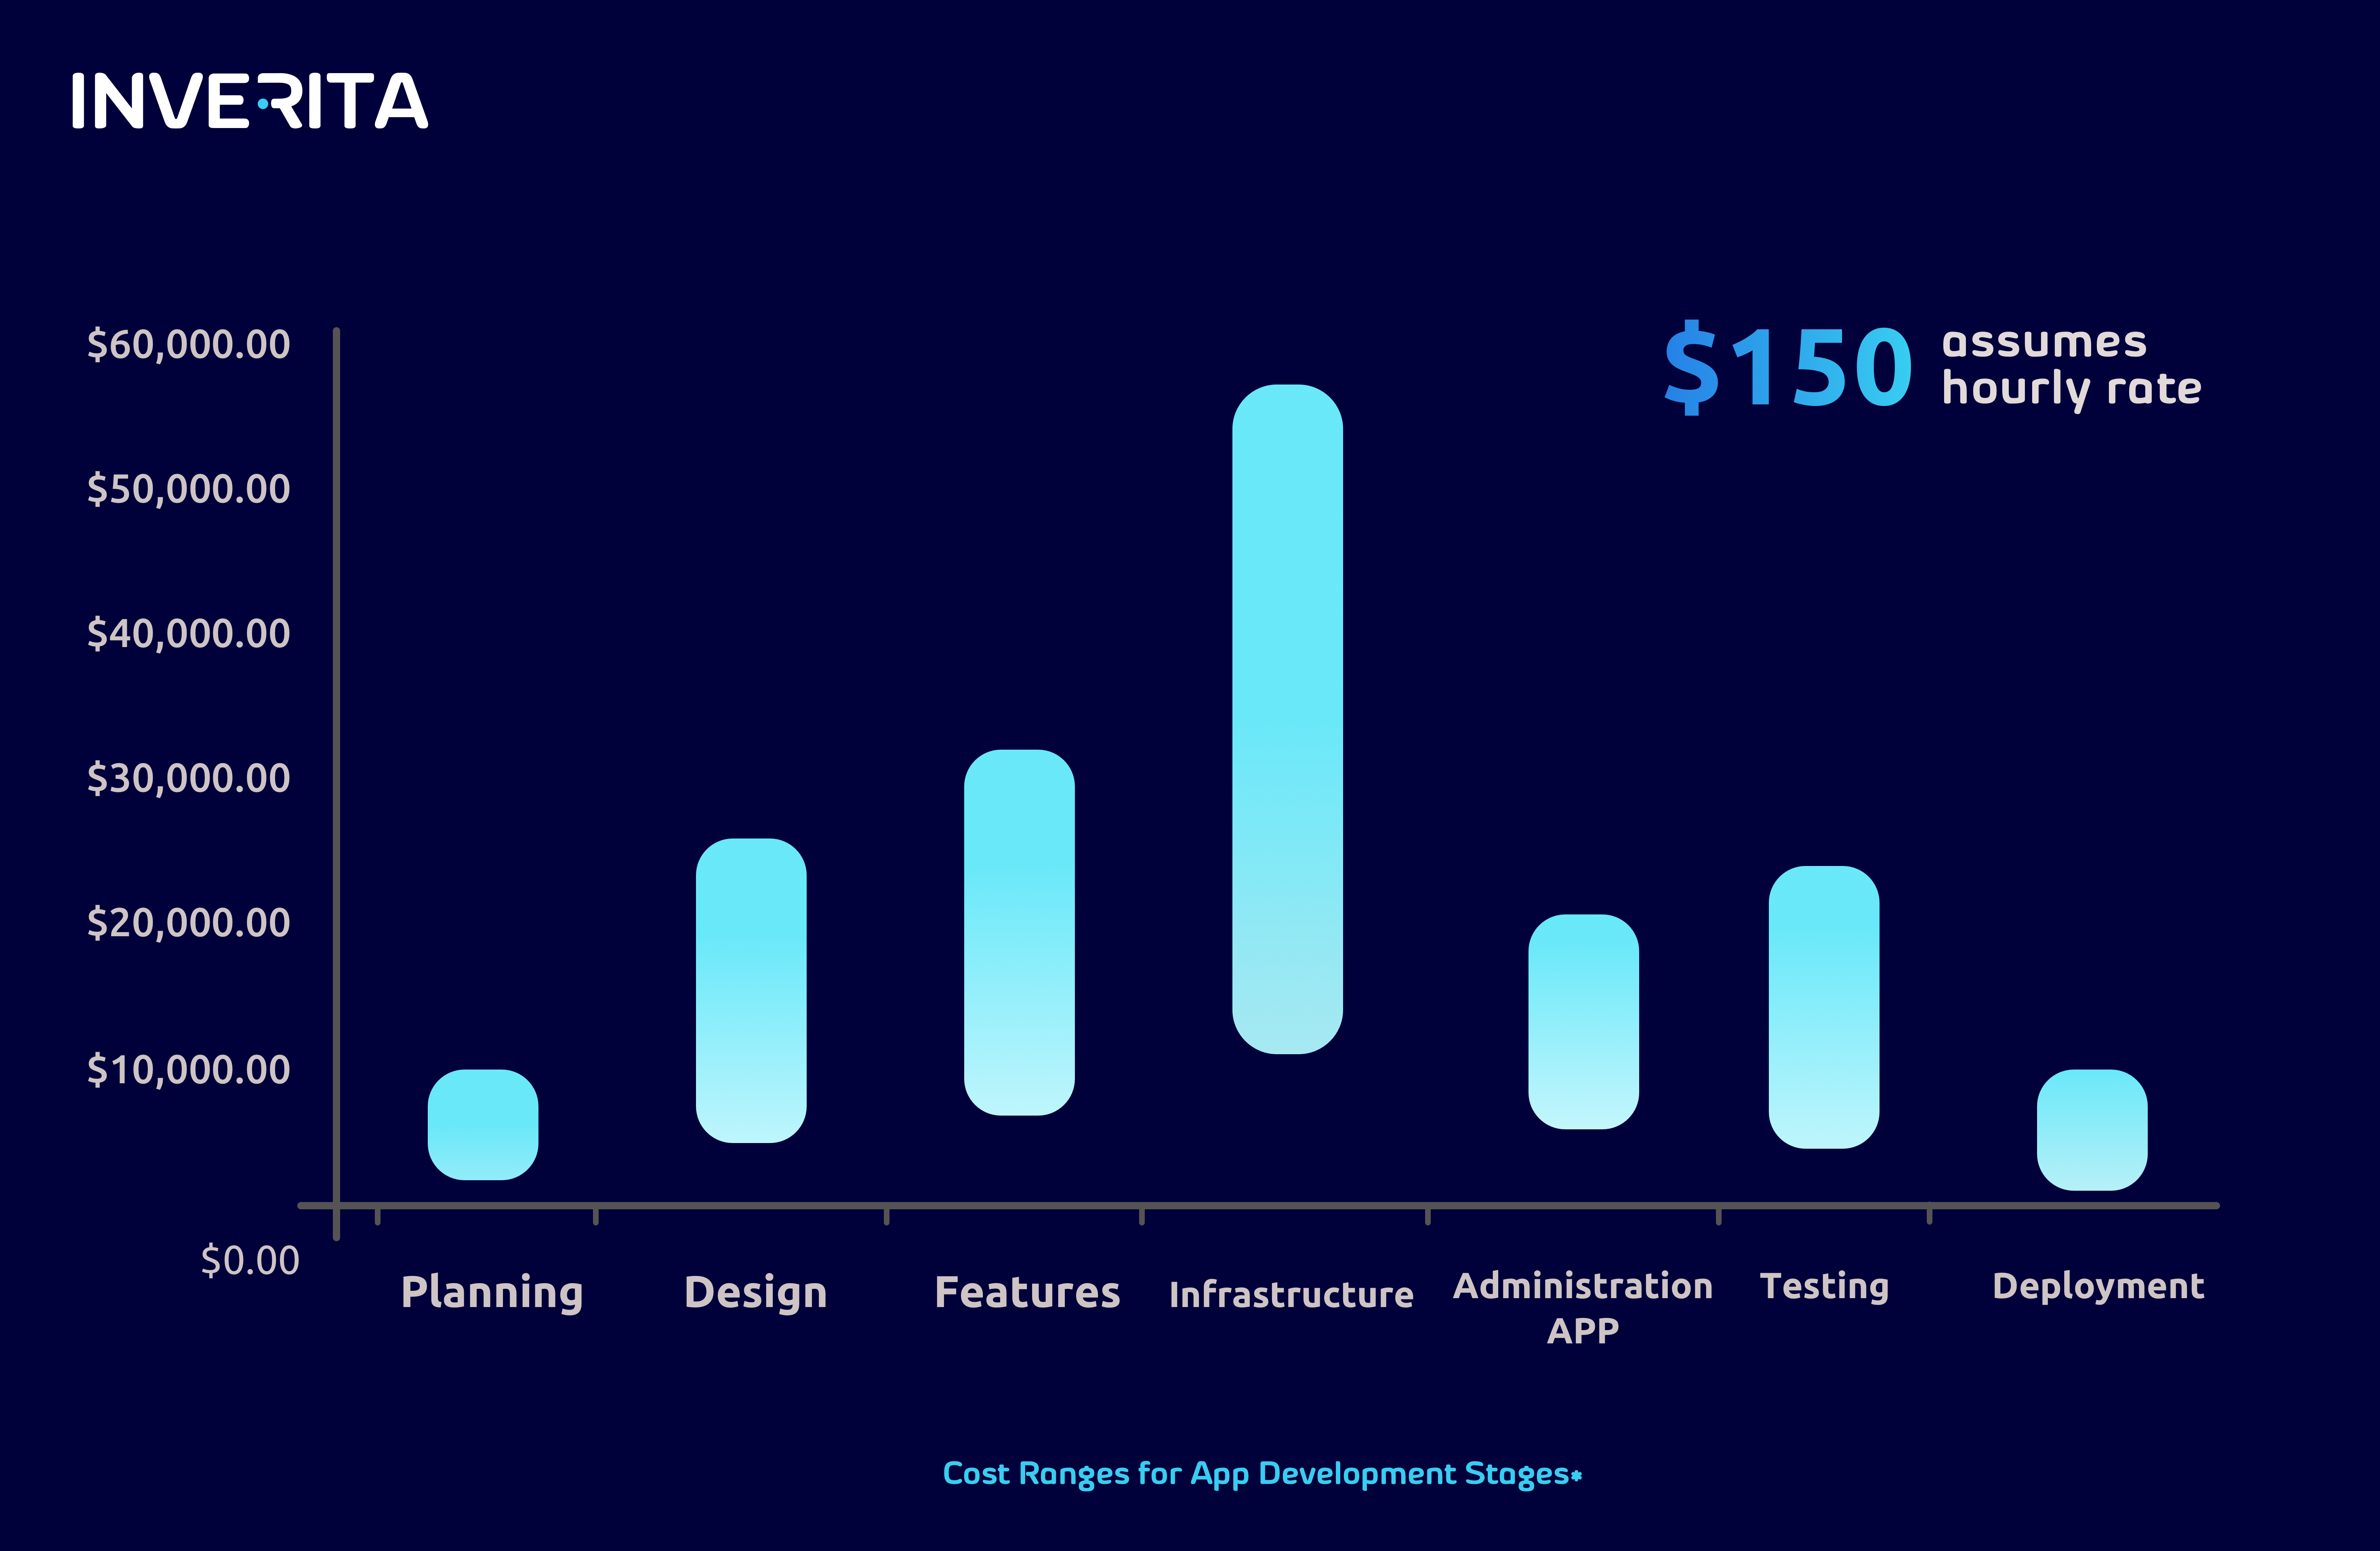 Median cost ranges for app development stages